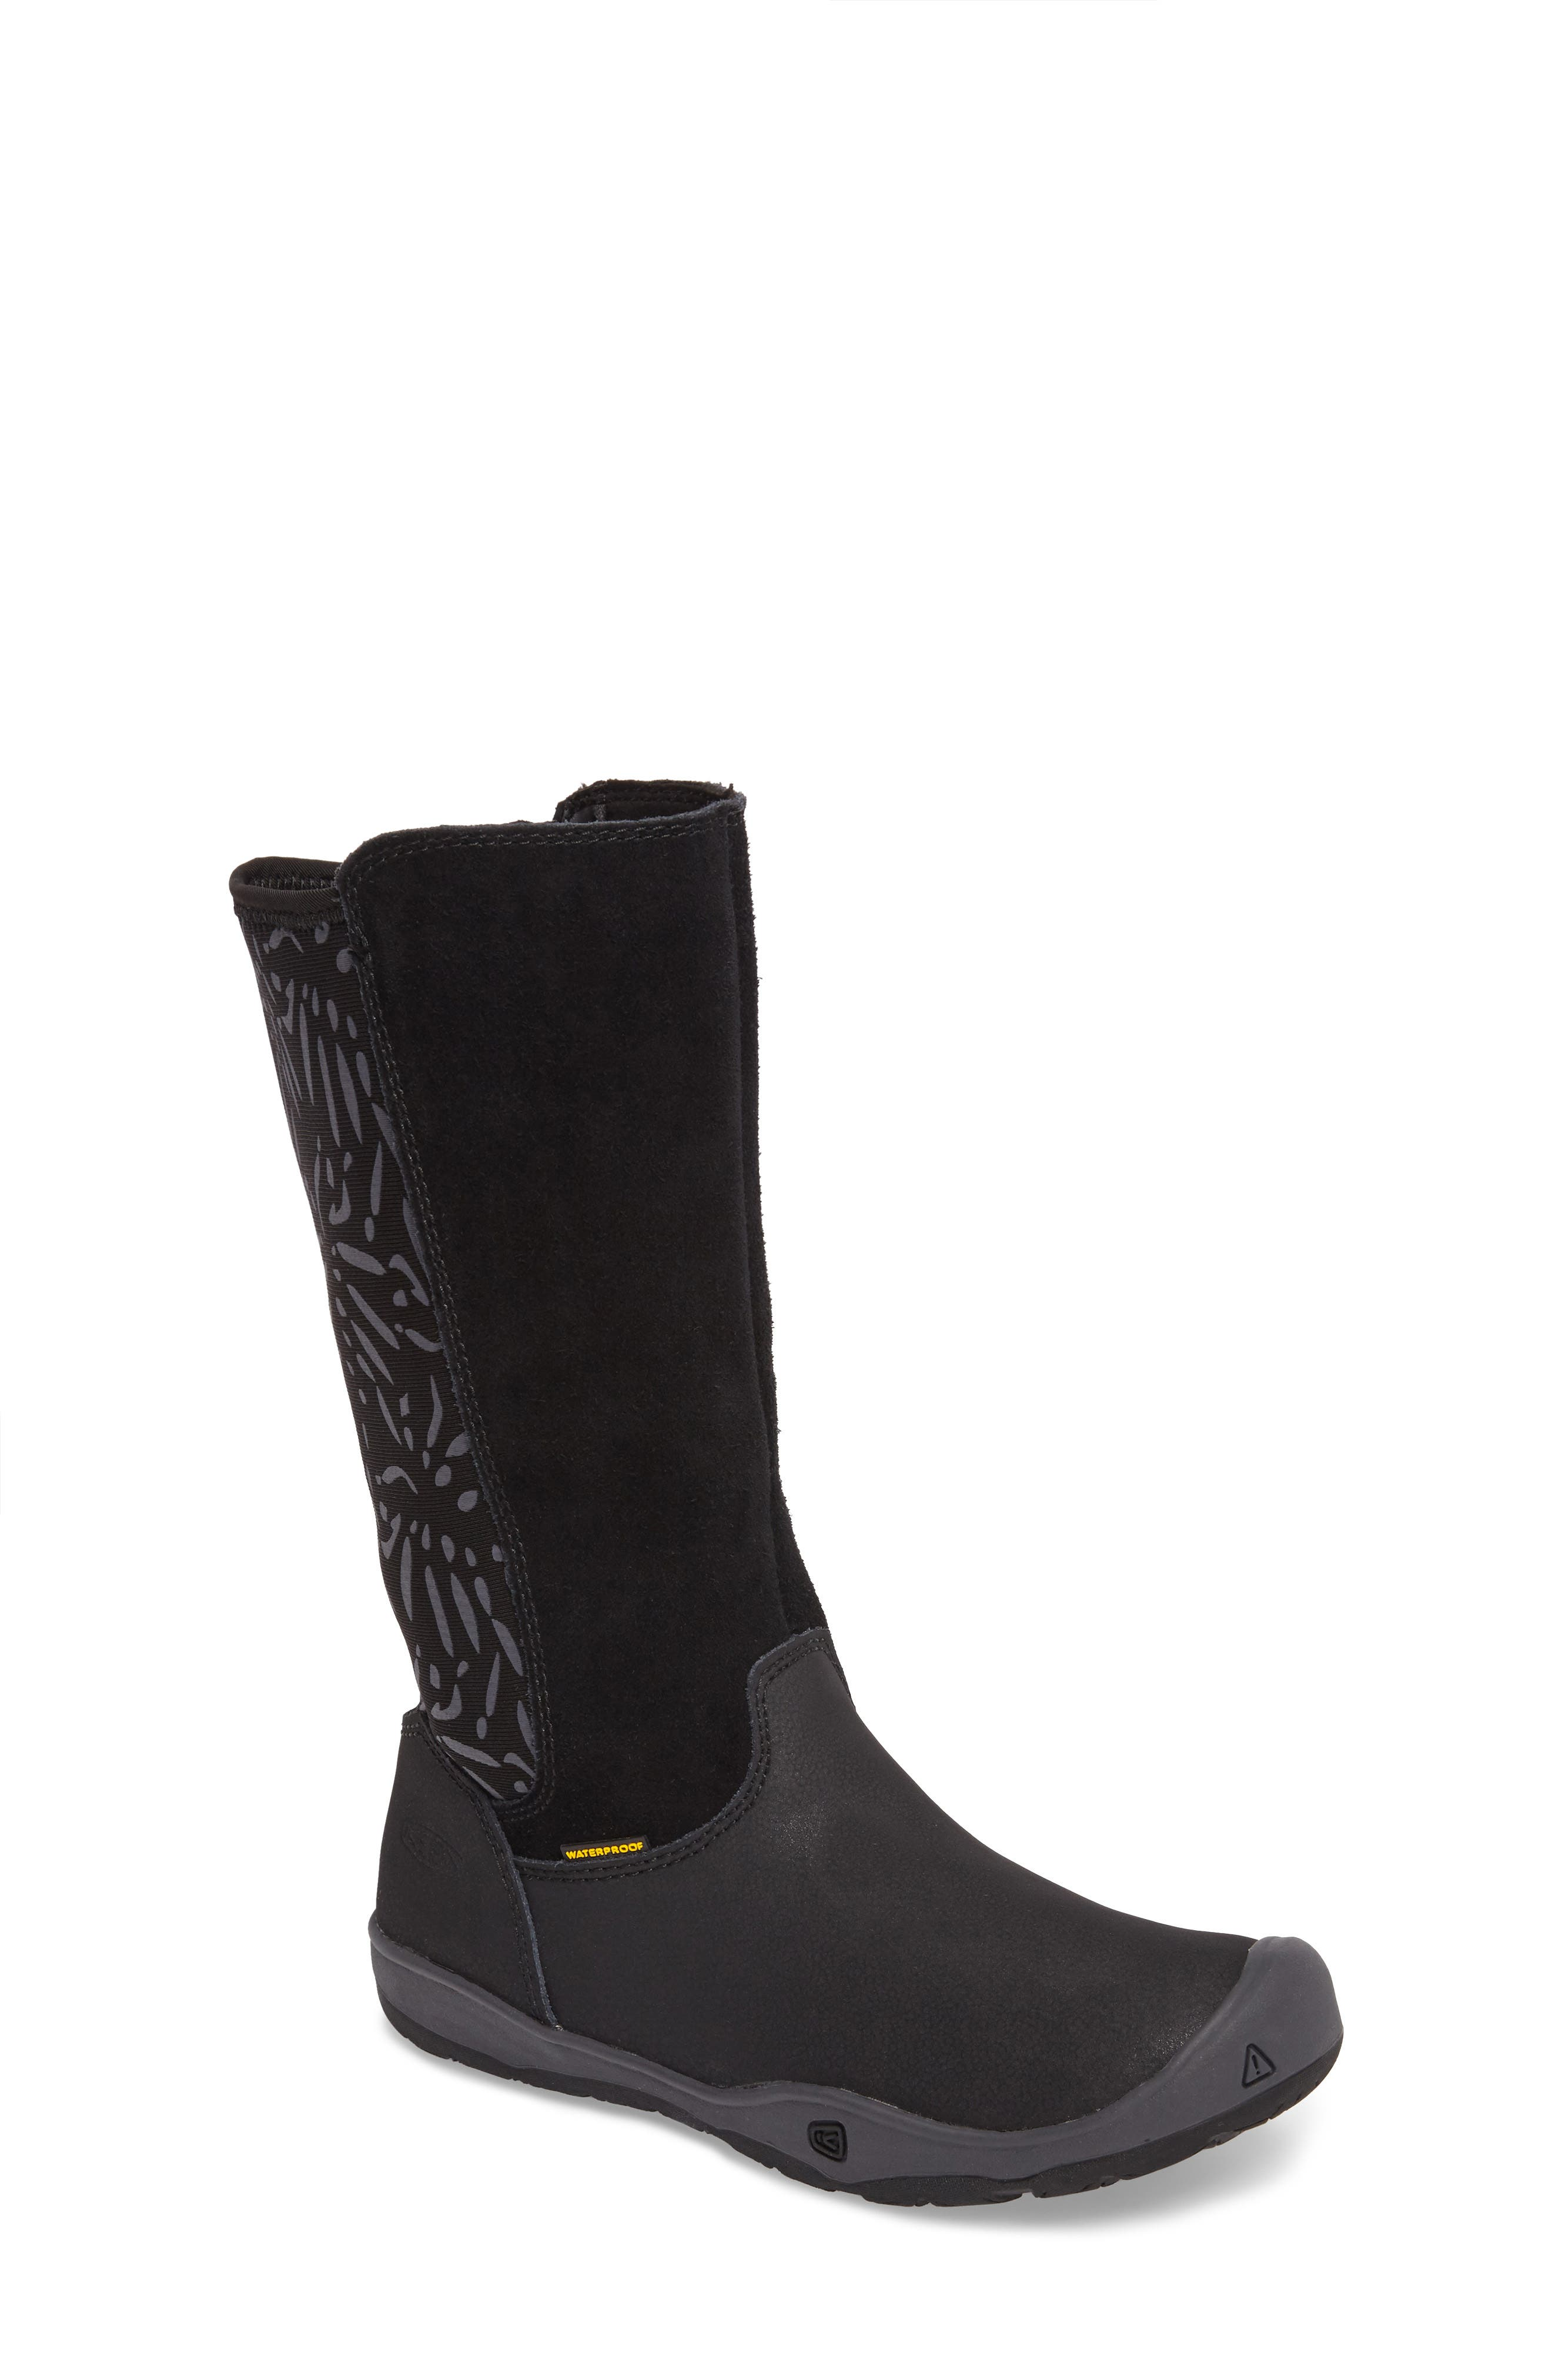 Moxie Tall Waterproof Boot,                         Main,                         color, Black/ Magnet